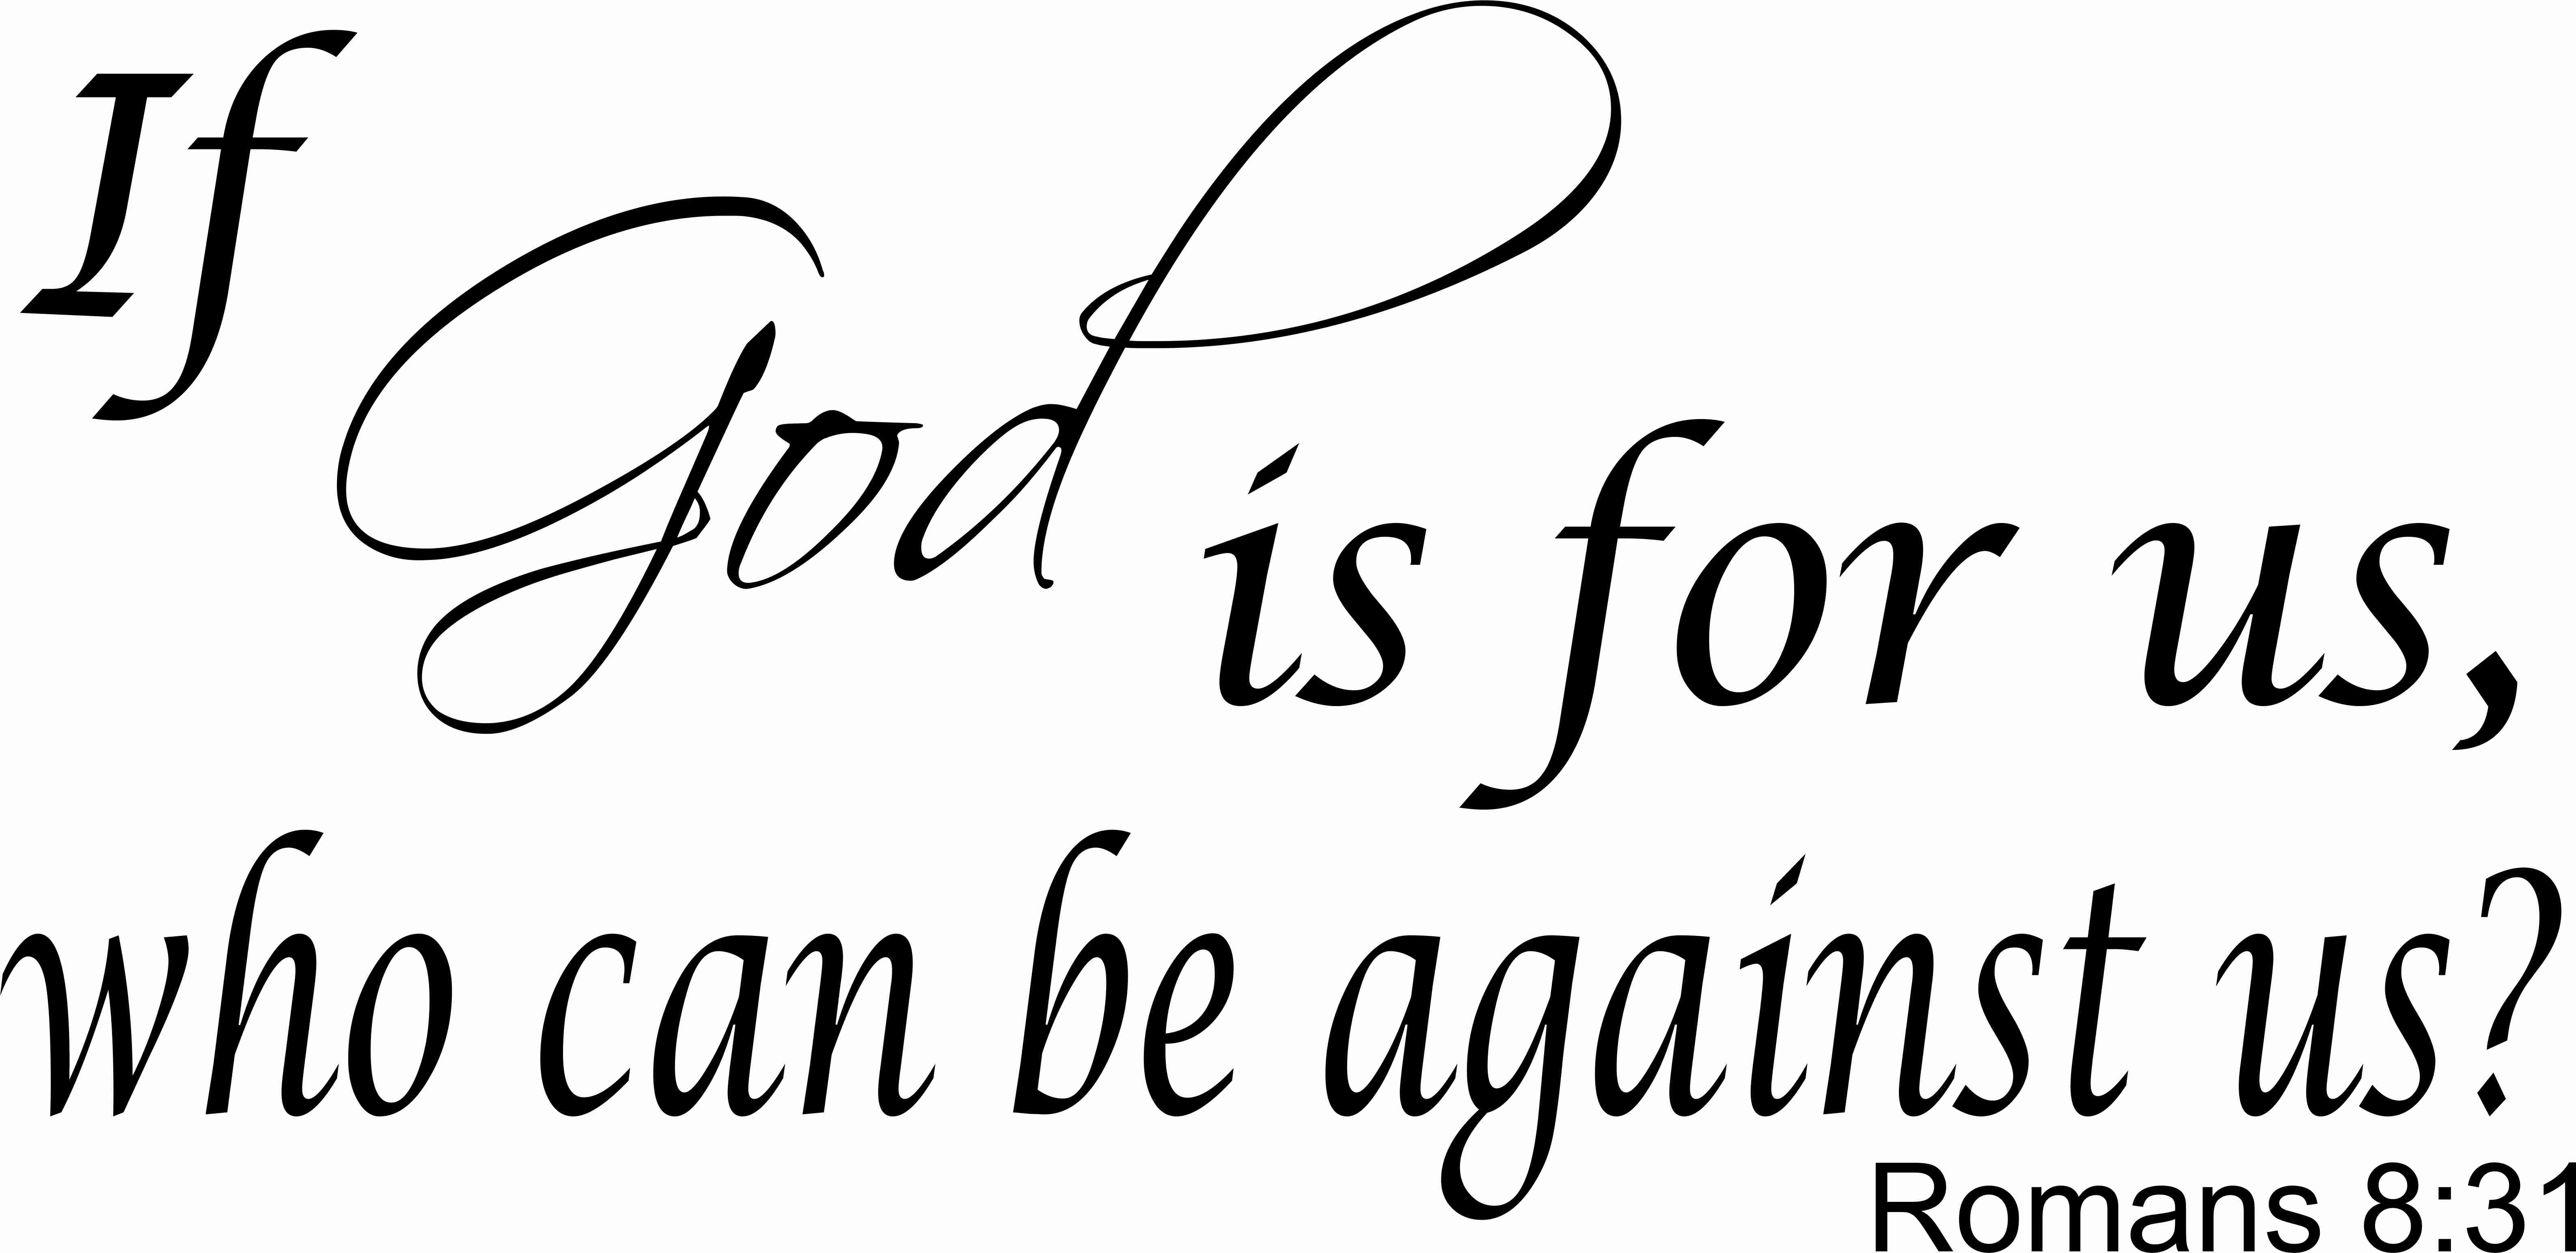 Decorative Wall Decal ~ Romans 8:31